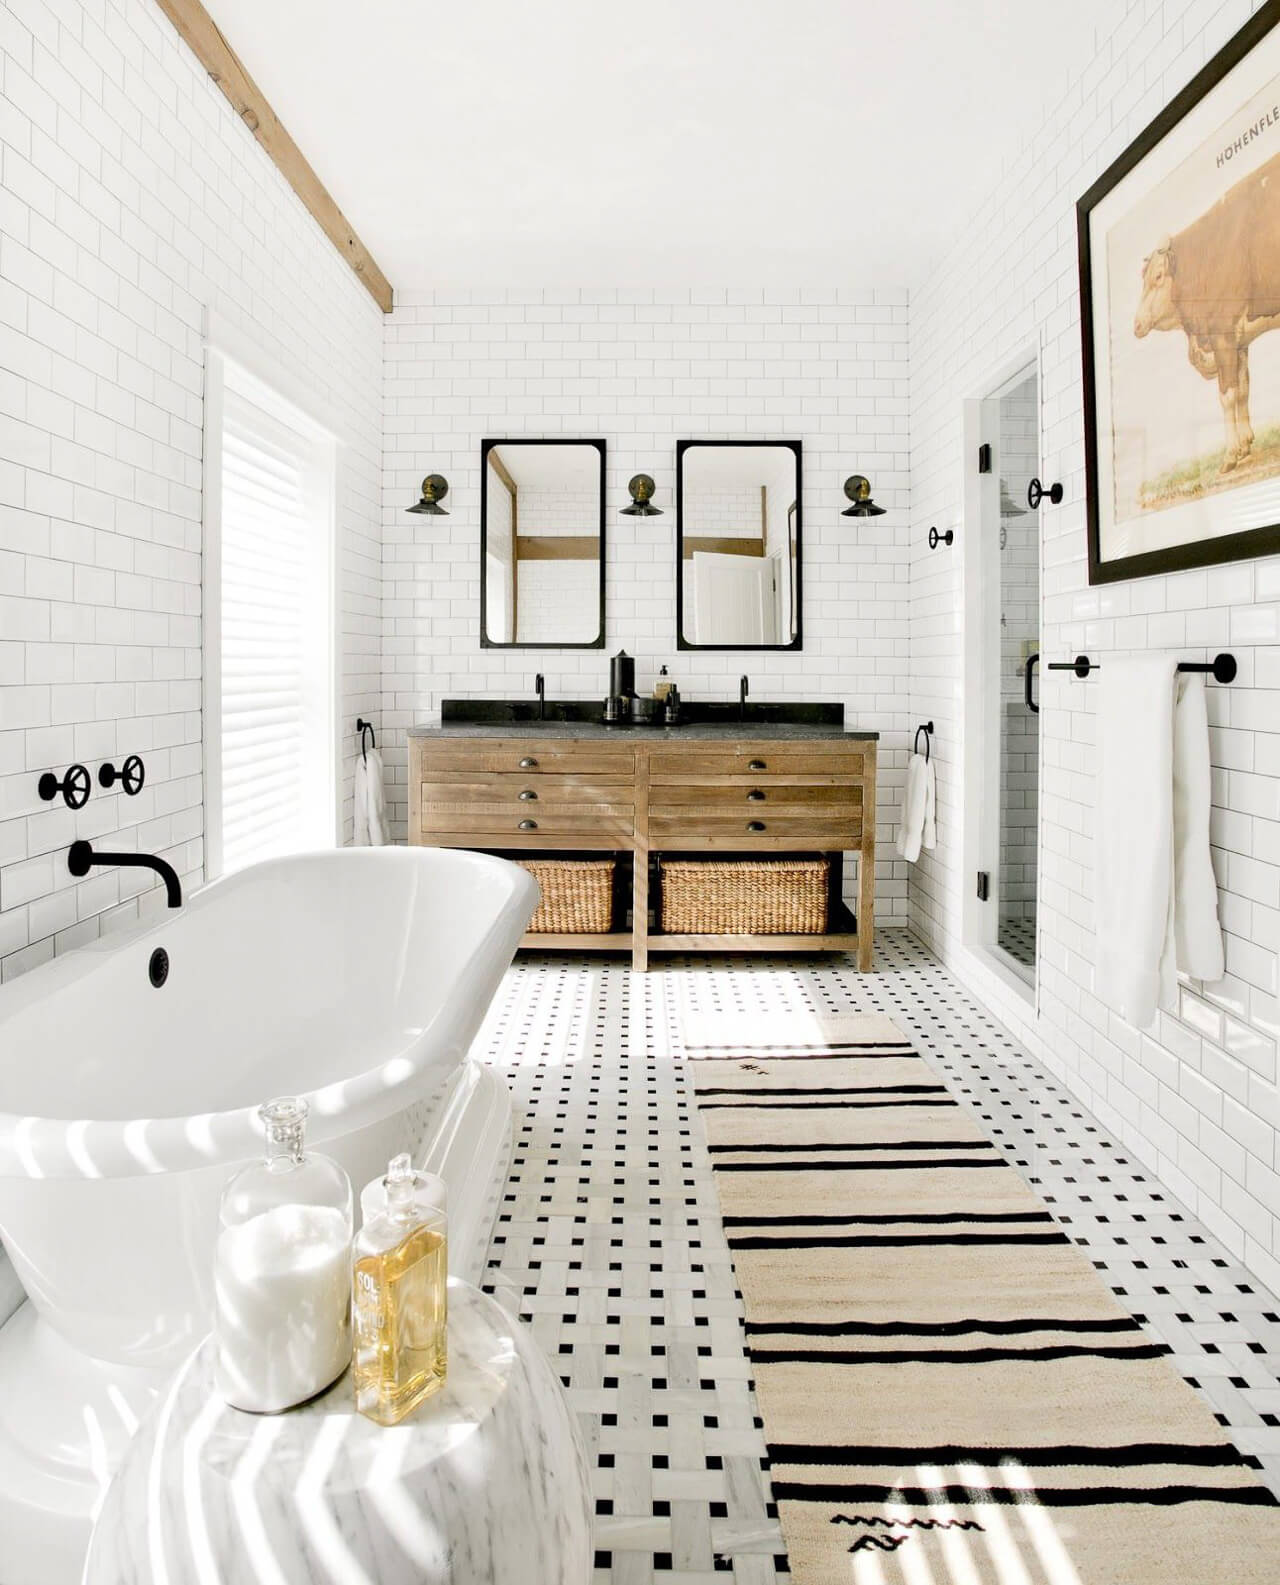 Love this black and white bathroom inspiraiton! - M Loves M @marmar